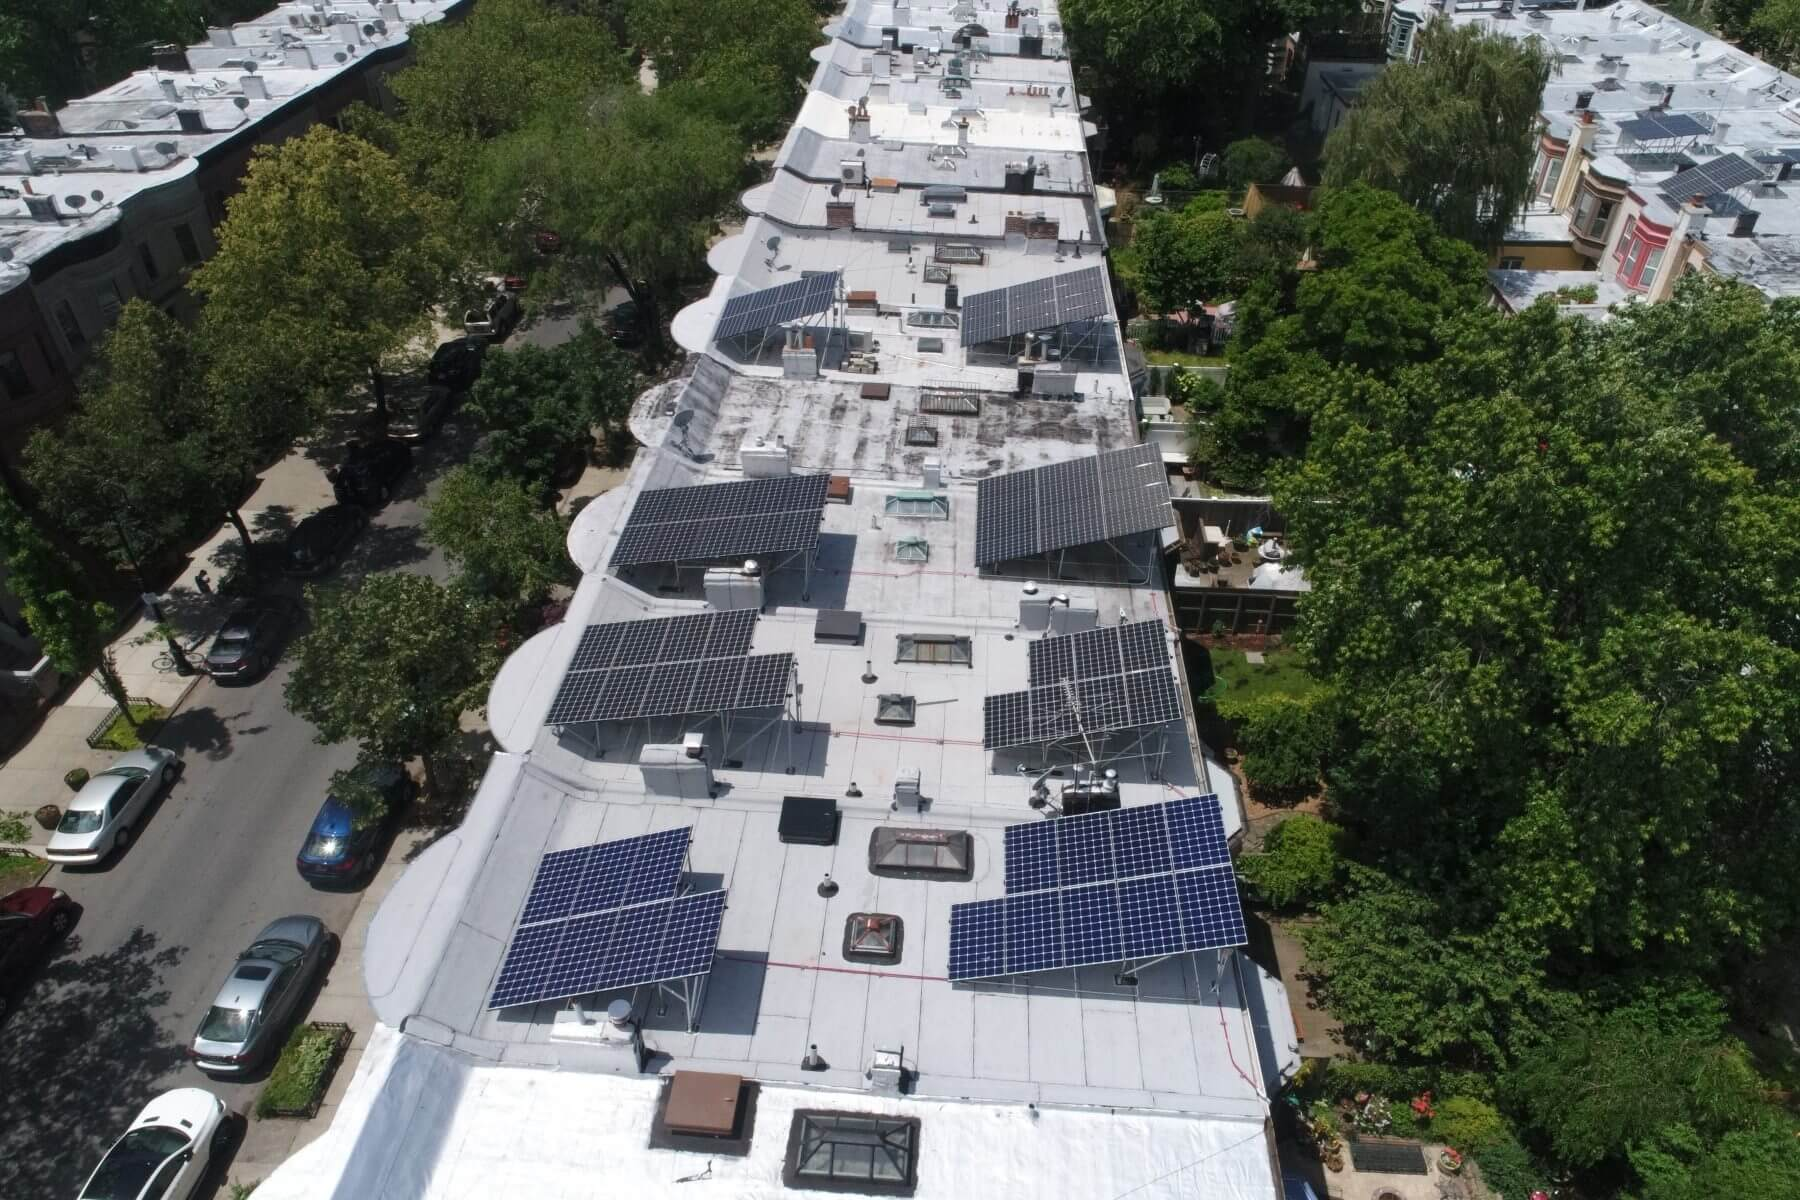 Solar systems installed on landmarked homes in Prospect Lefferts Gardens.